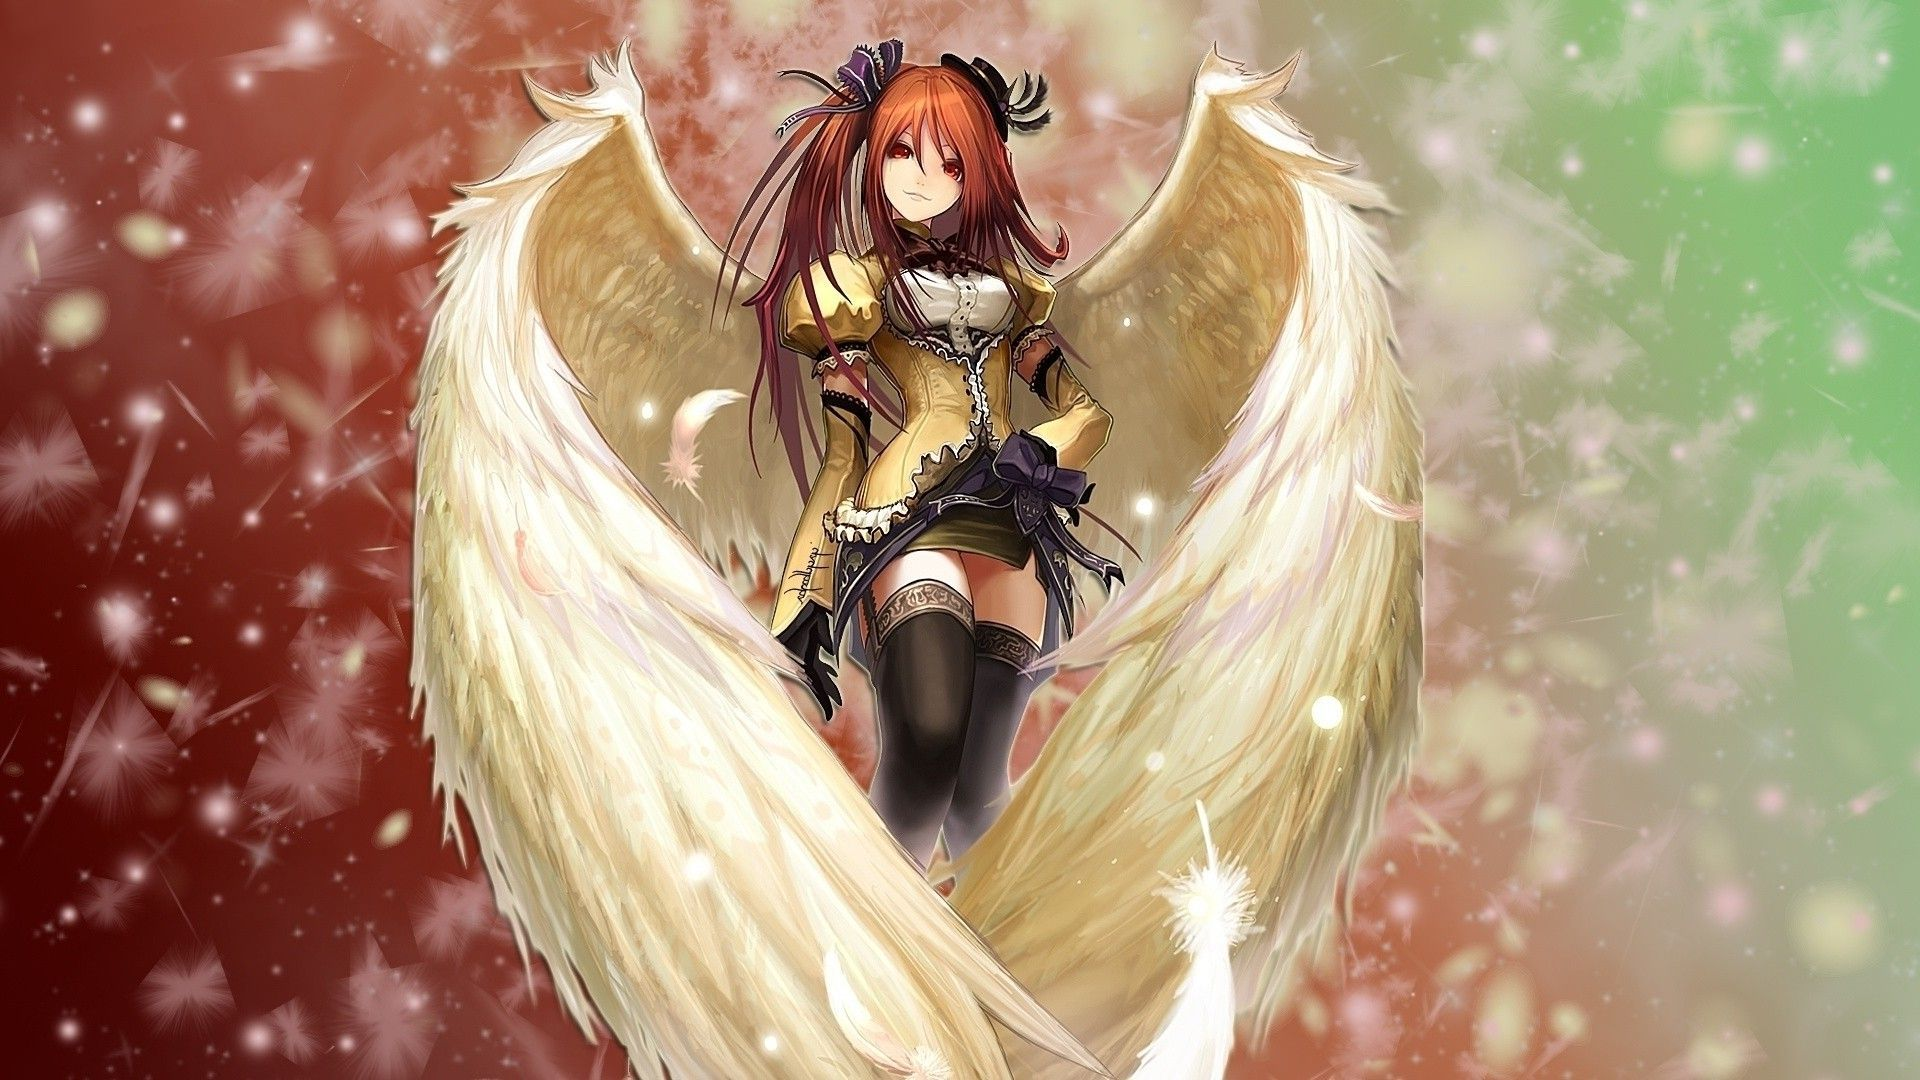 fascinating-anime-angel-hd-wallpaper-widescreen-anime-angels